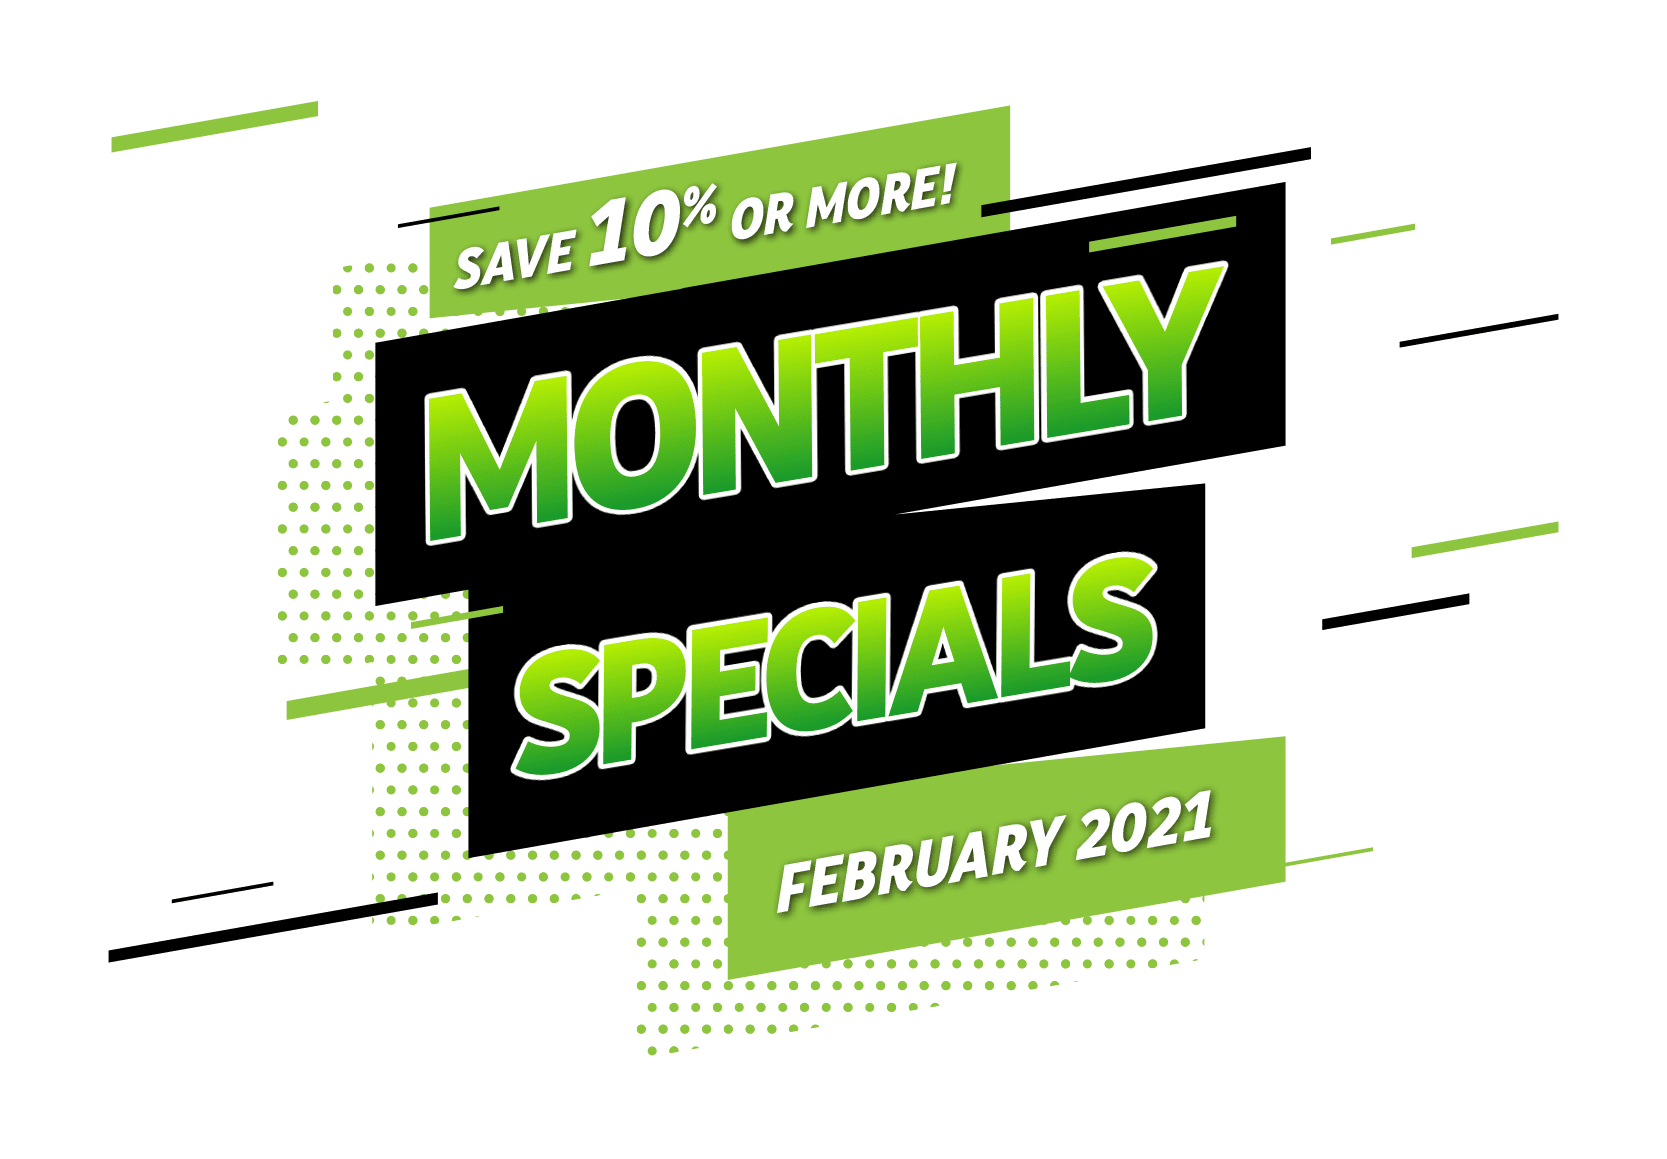 Monthly Specials EDM Feb 21 Title